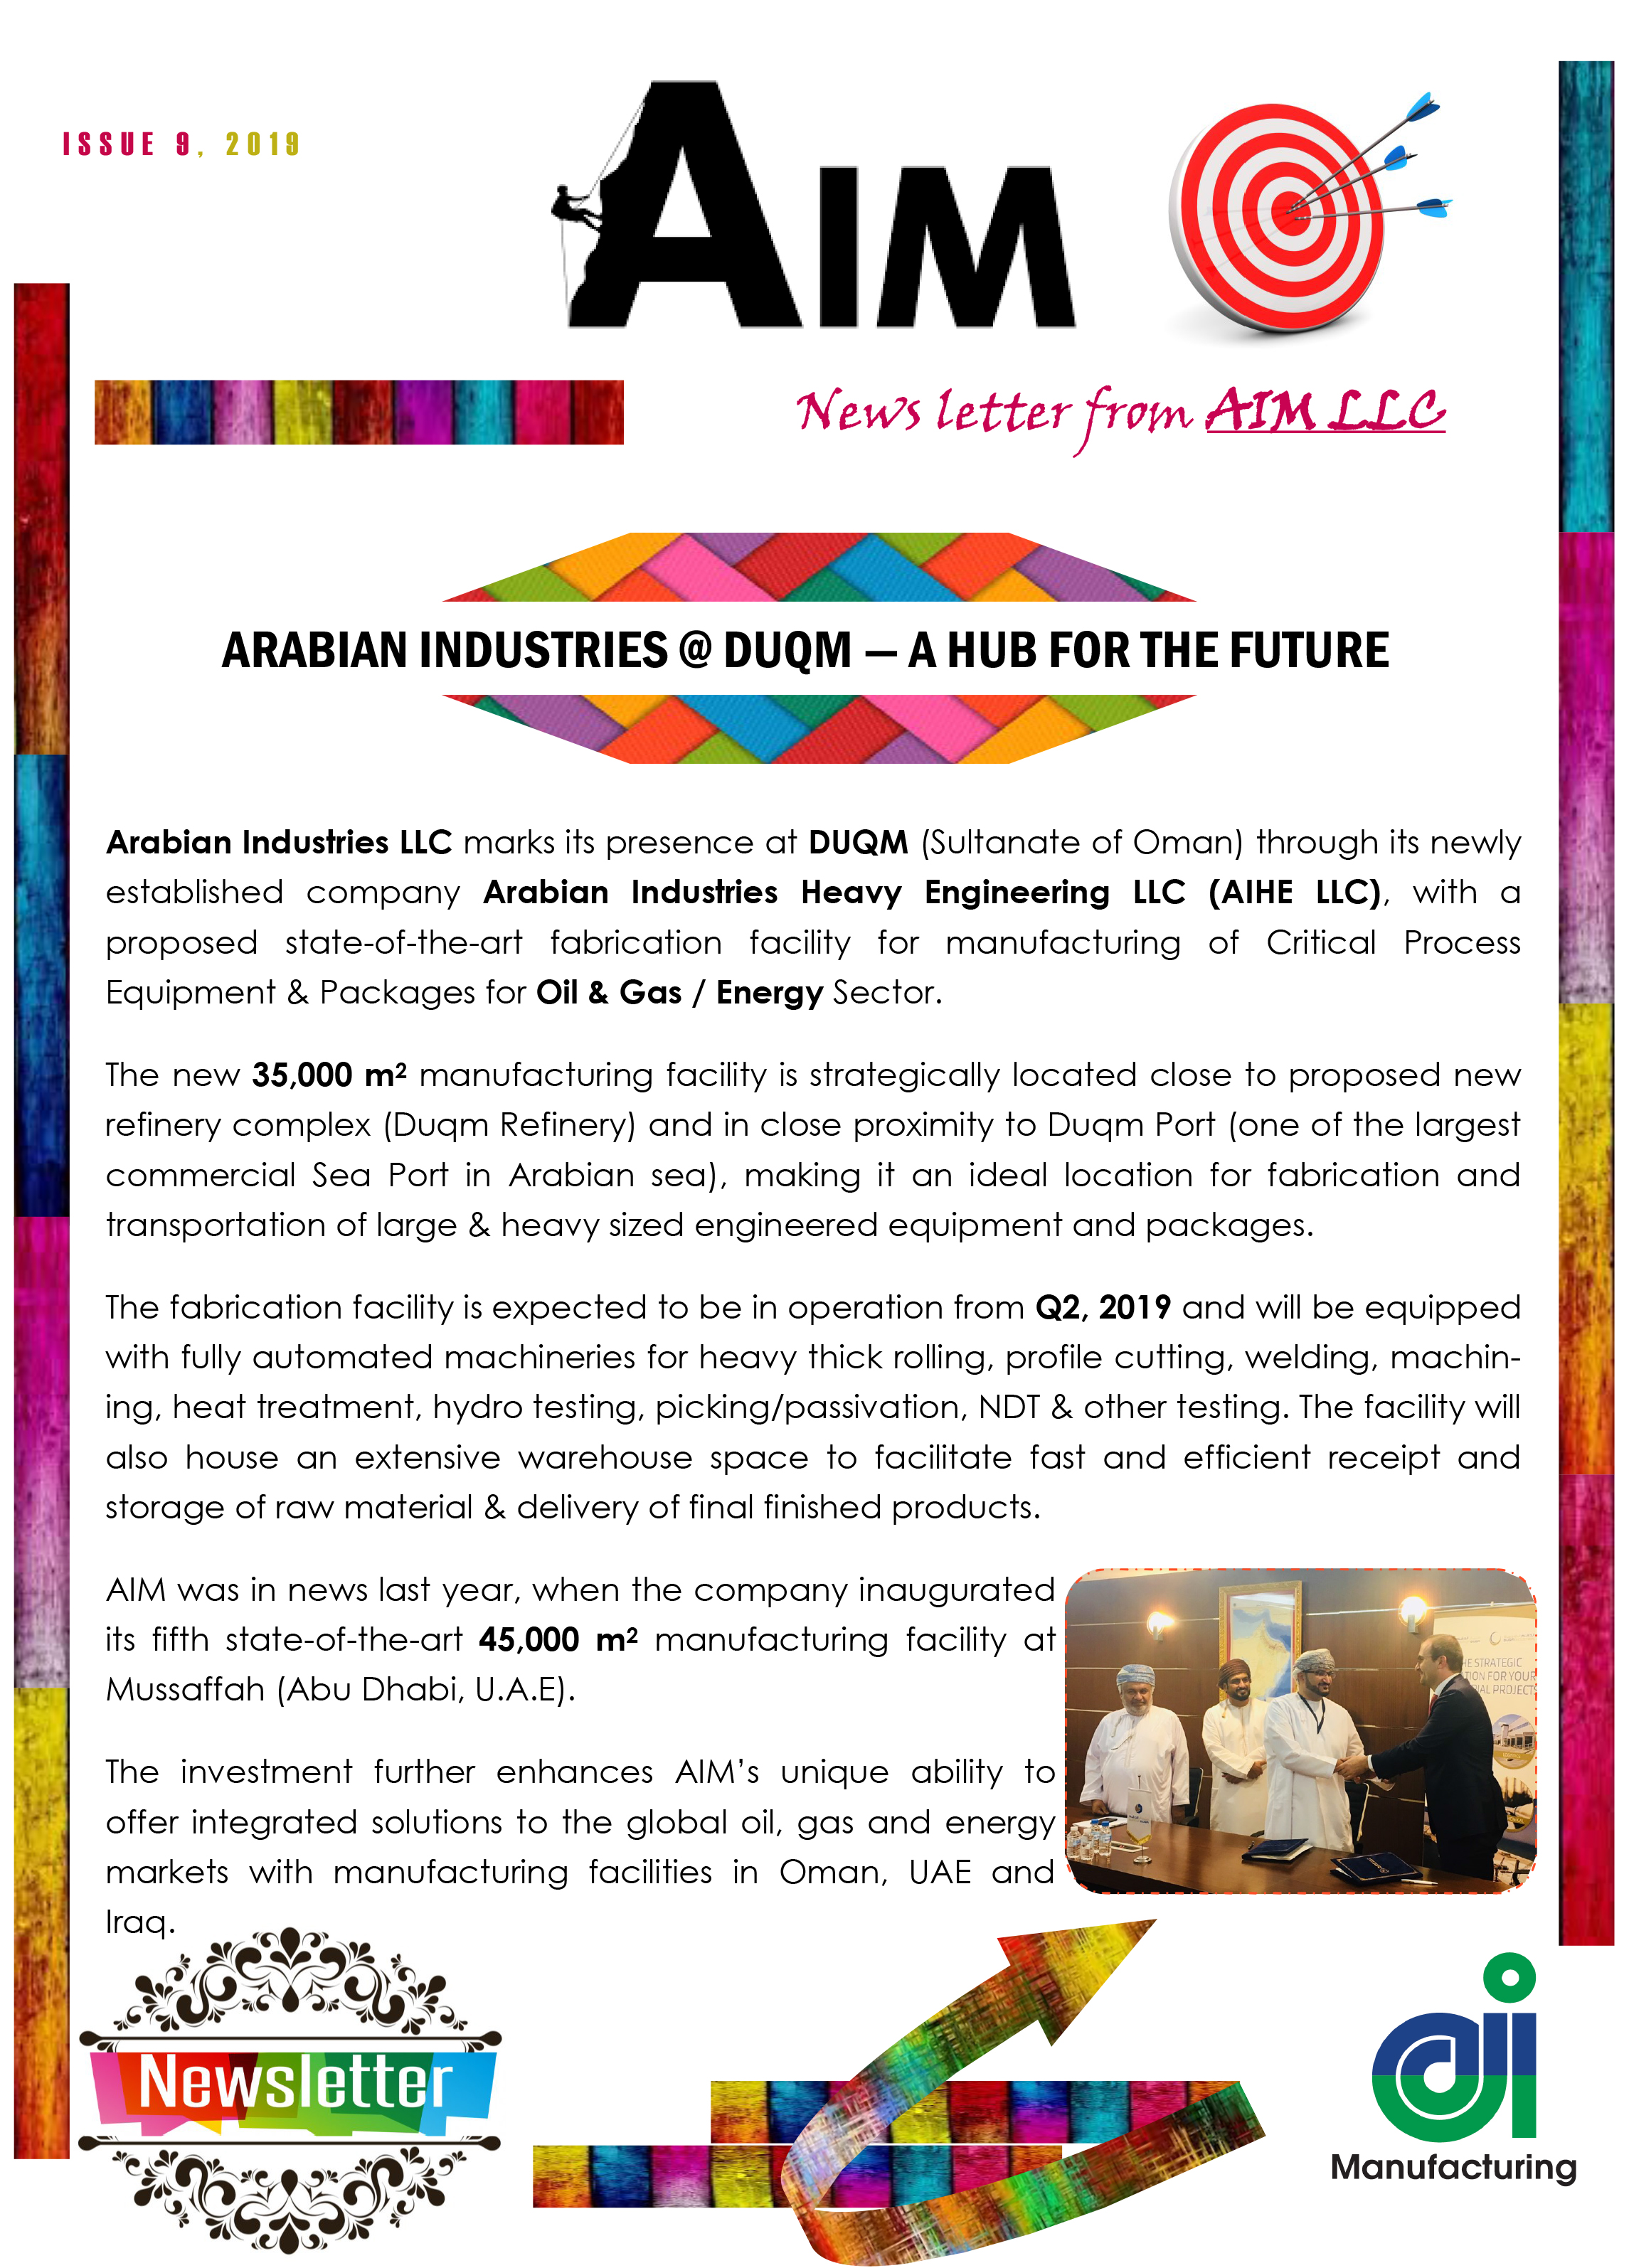 AIM News Letter | Arabian Industries